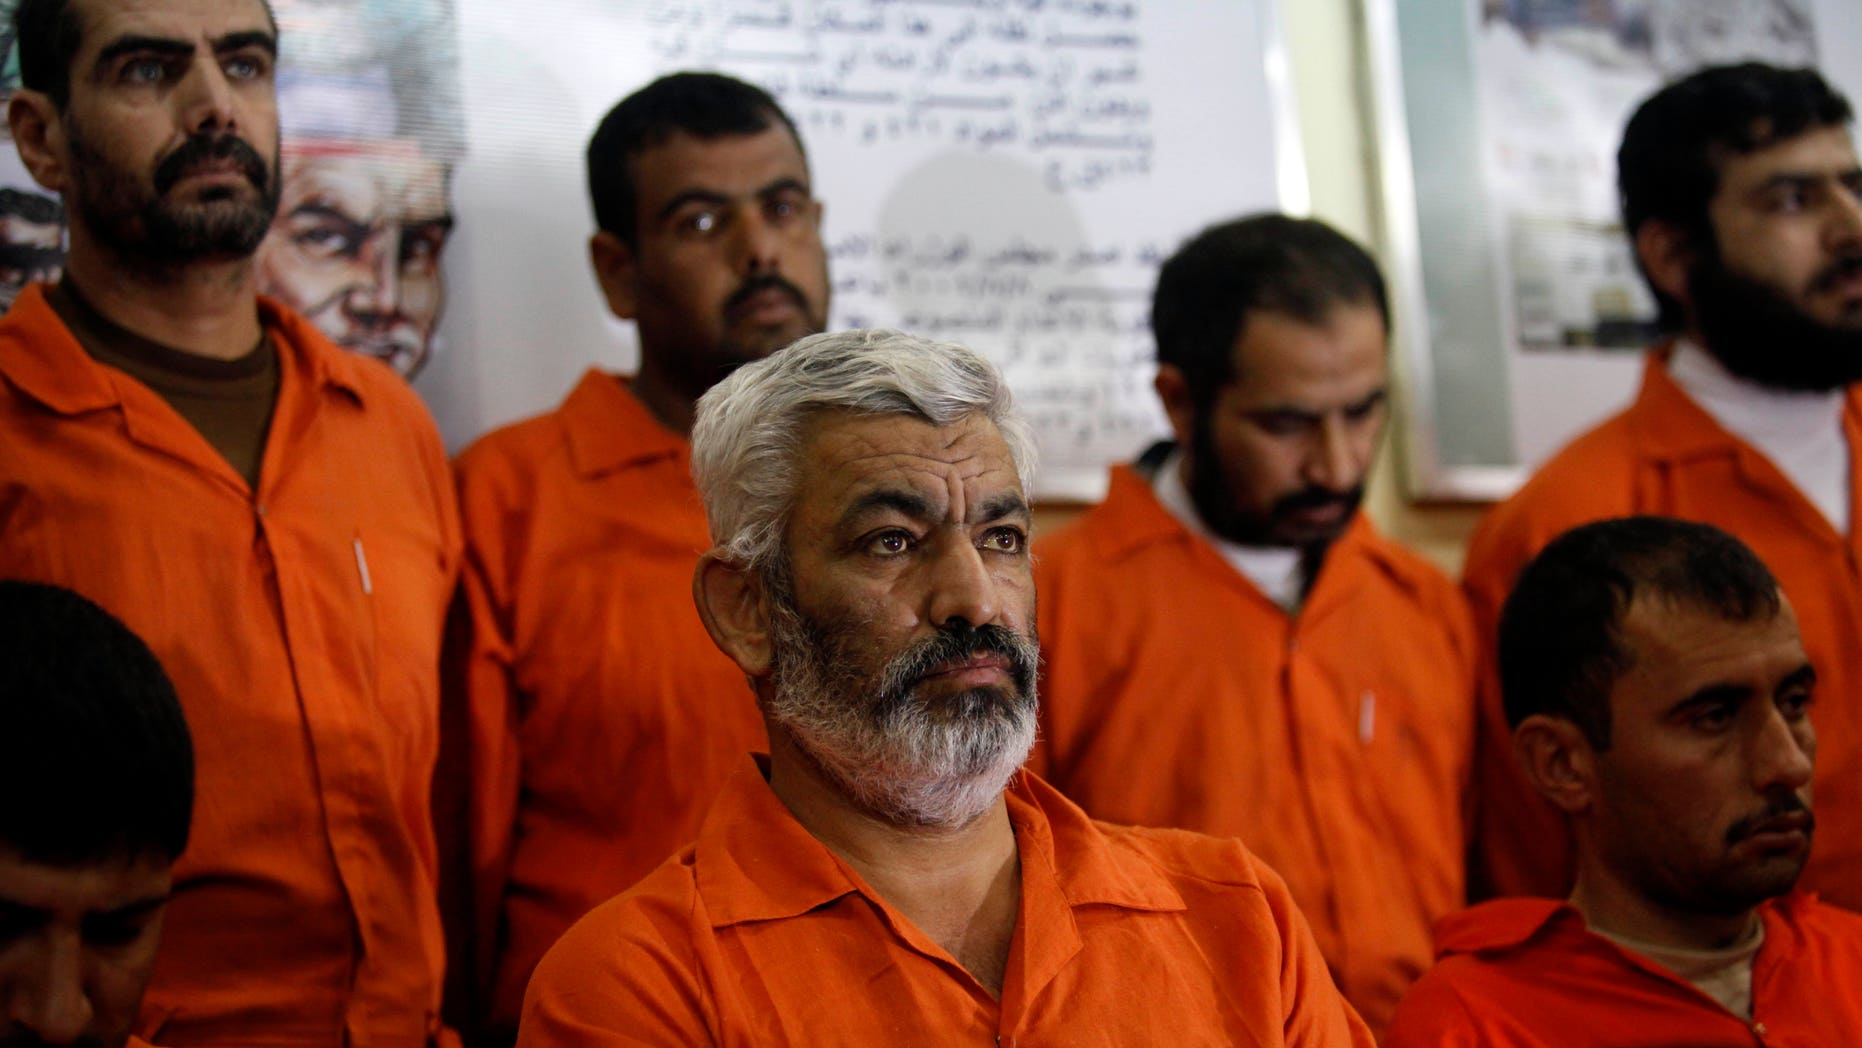 Handcuffed Al Qaeda-linked suspects sit in a terrorist combat and organized crime department in Baghdad, Iraq, Thursday, Dec. 2, 2010. Iraq's interior minister called Thursday for the death penalty for a group of 39 Al Qaeda-linked suspects even before they have been put on trial for allegedly plotting to bomb targets in Baghdad.